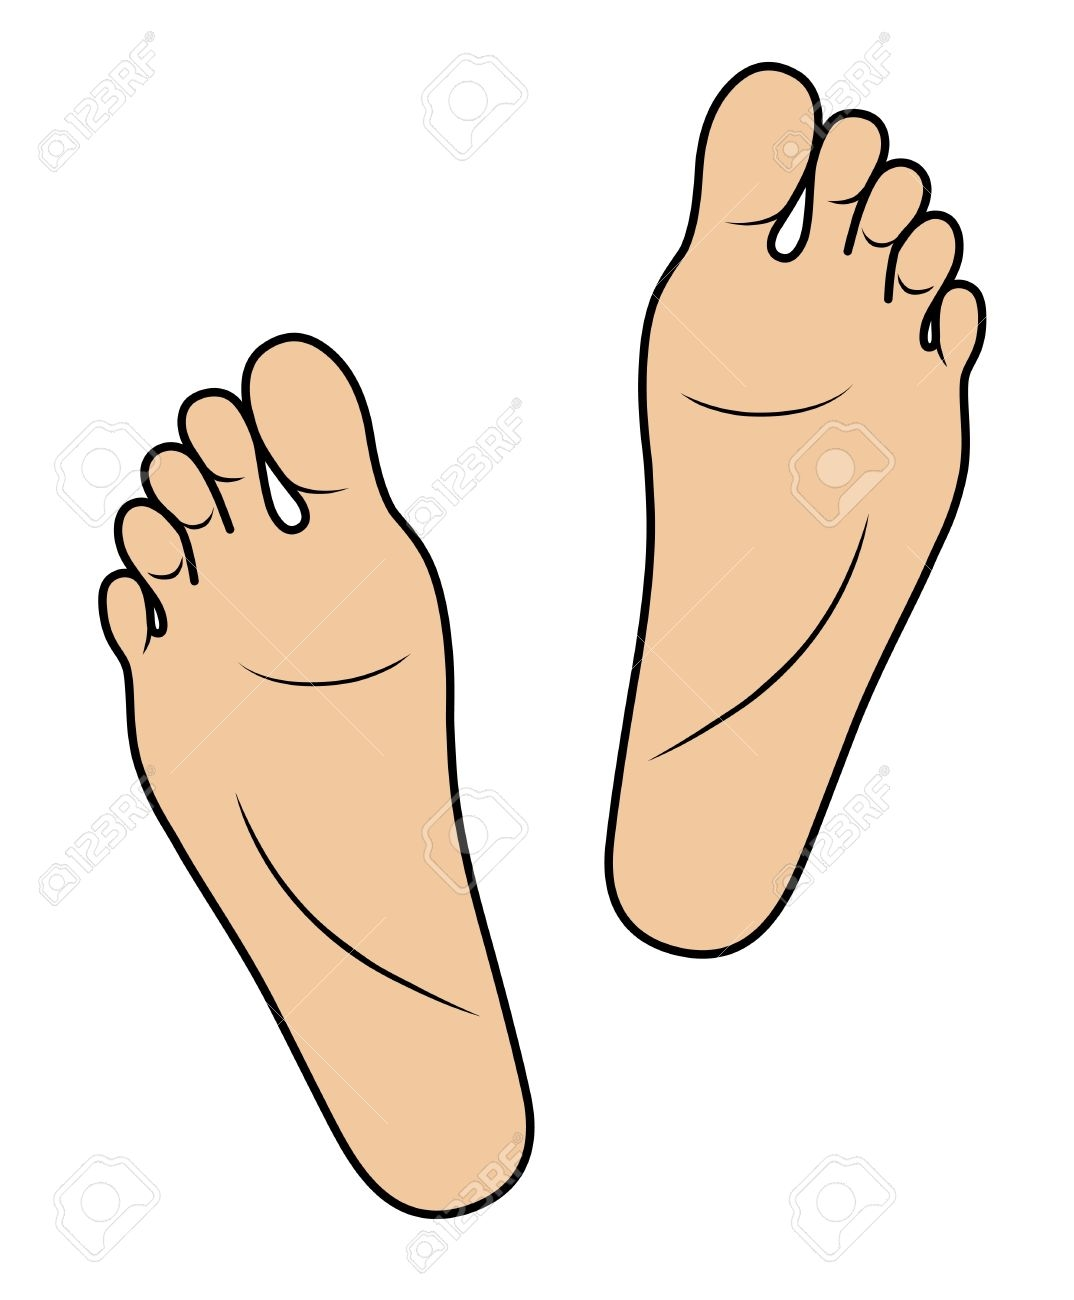 Feet clipart. Unique foot collection digital